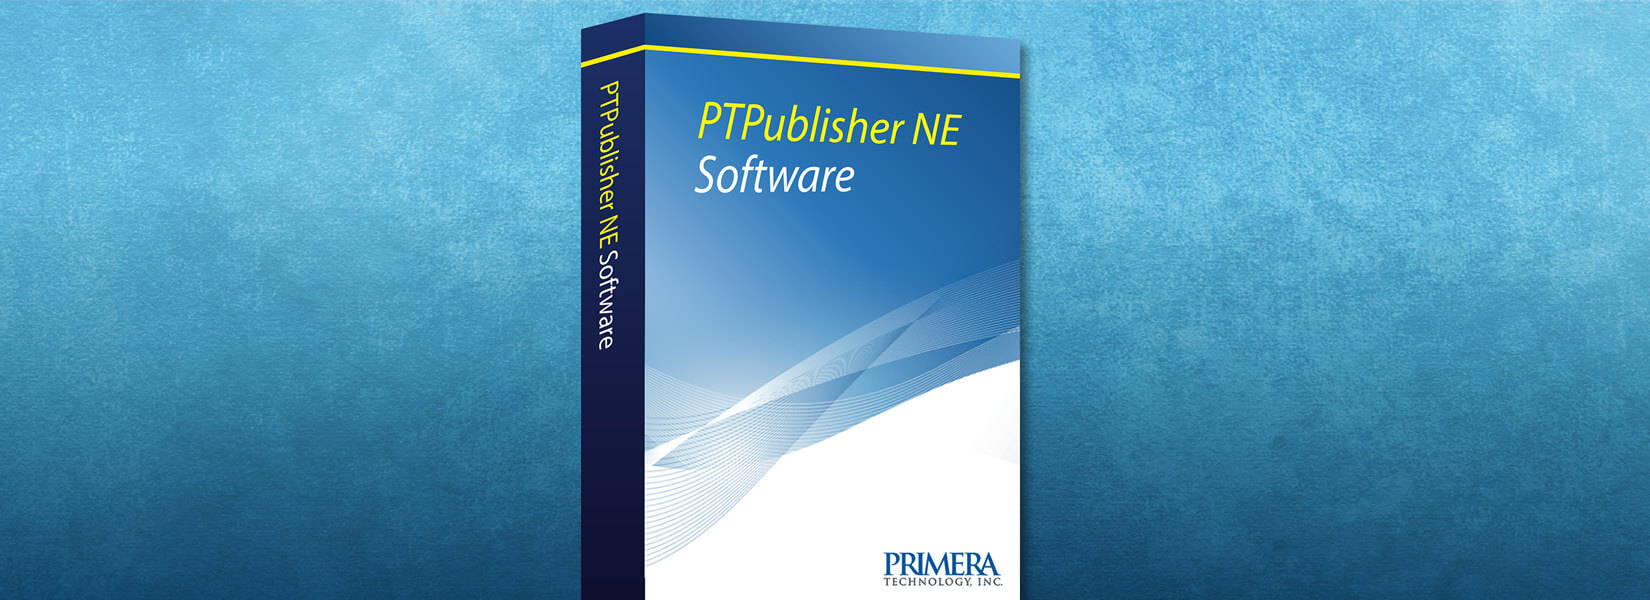 PTPublisher NE